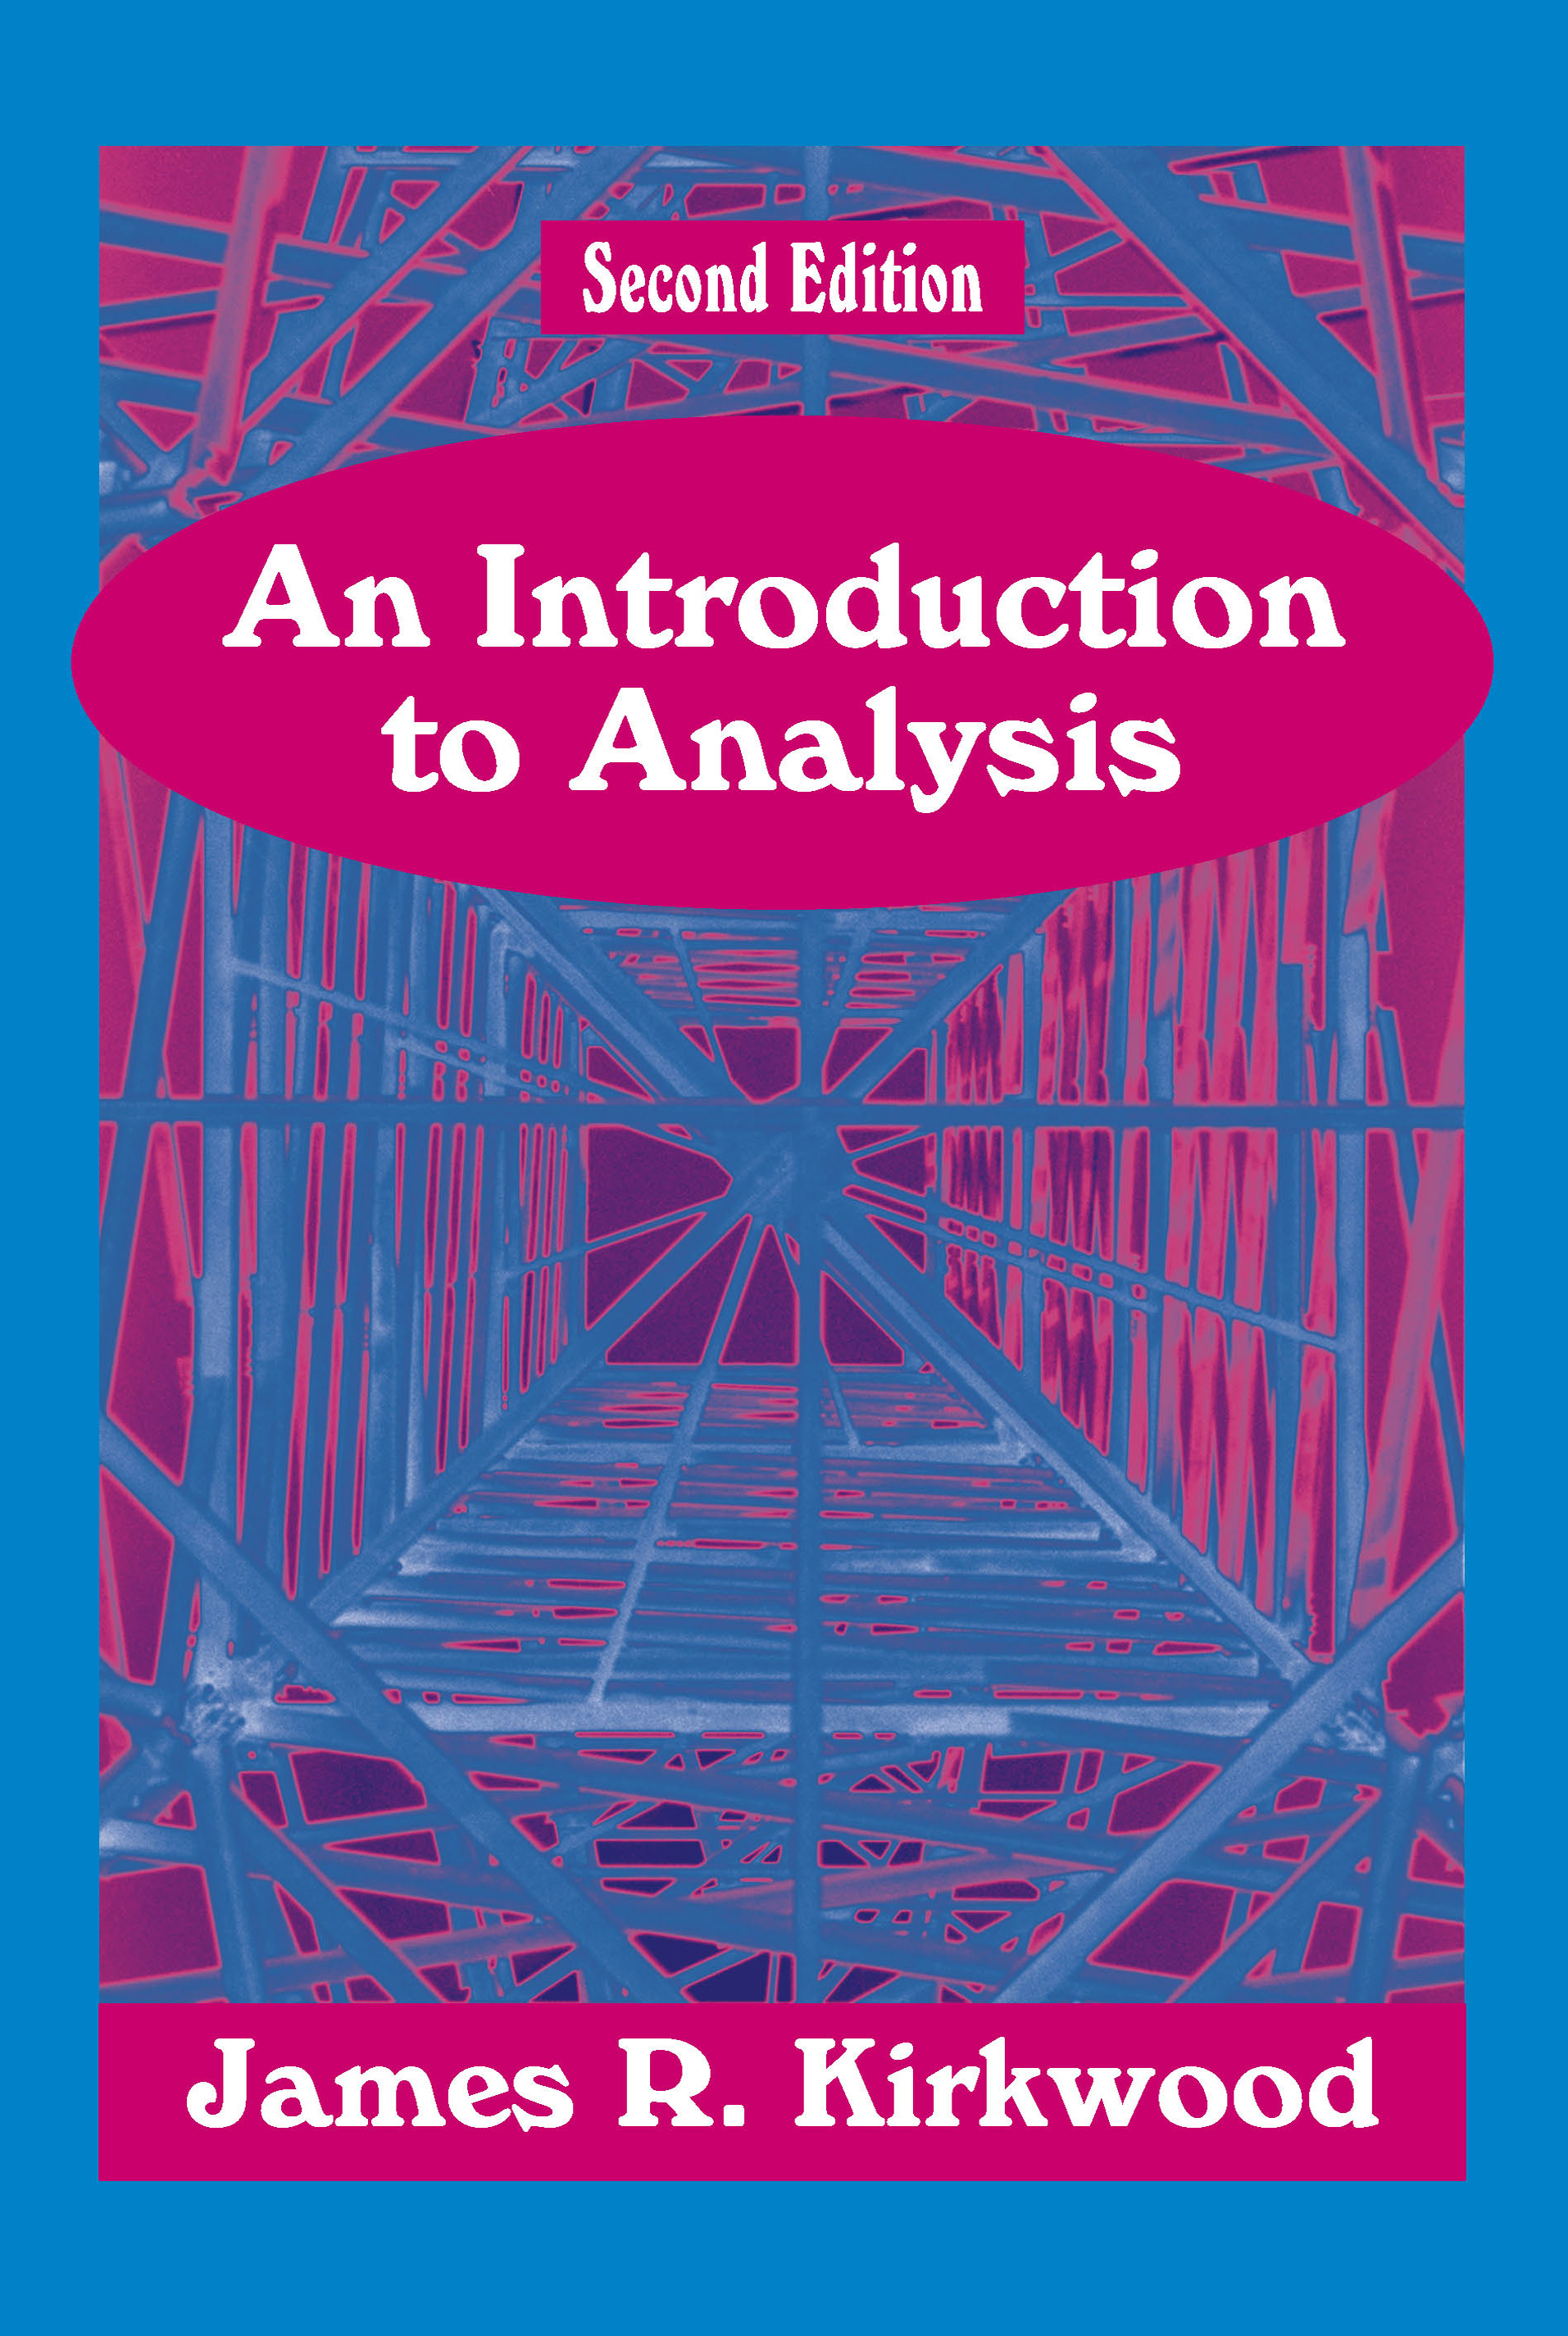 an introduction to the analysis of the movie sneakers Bend it like beckham is a film that embodies a collection of themes culture, gender roles, and racism play an important role in the film and in the lives of the characters culture, gender roles, and racism play an important role in the film and in the lives of the characters.